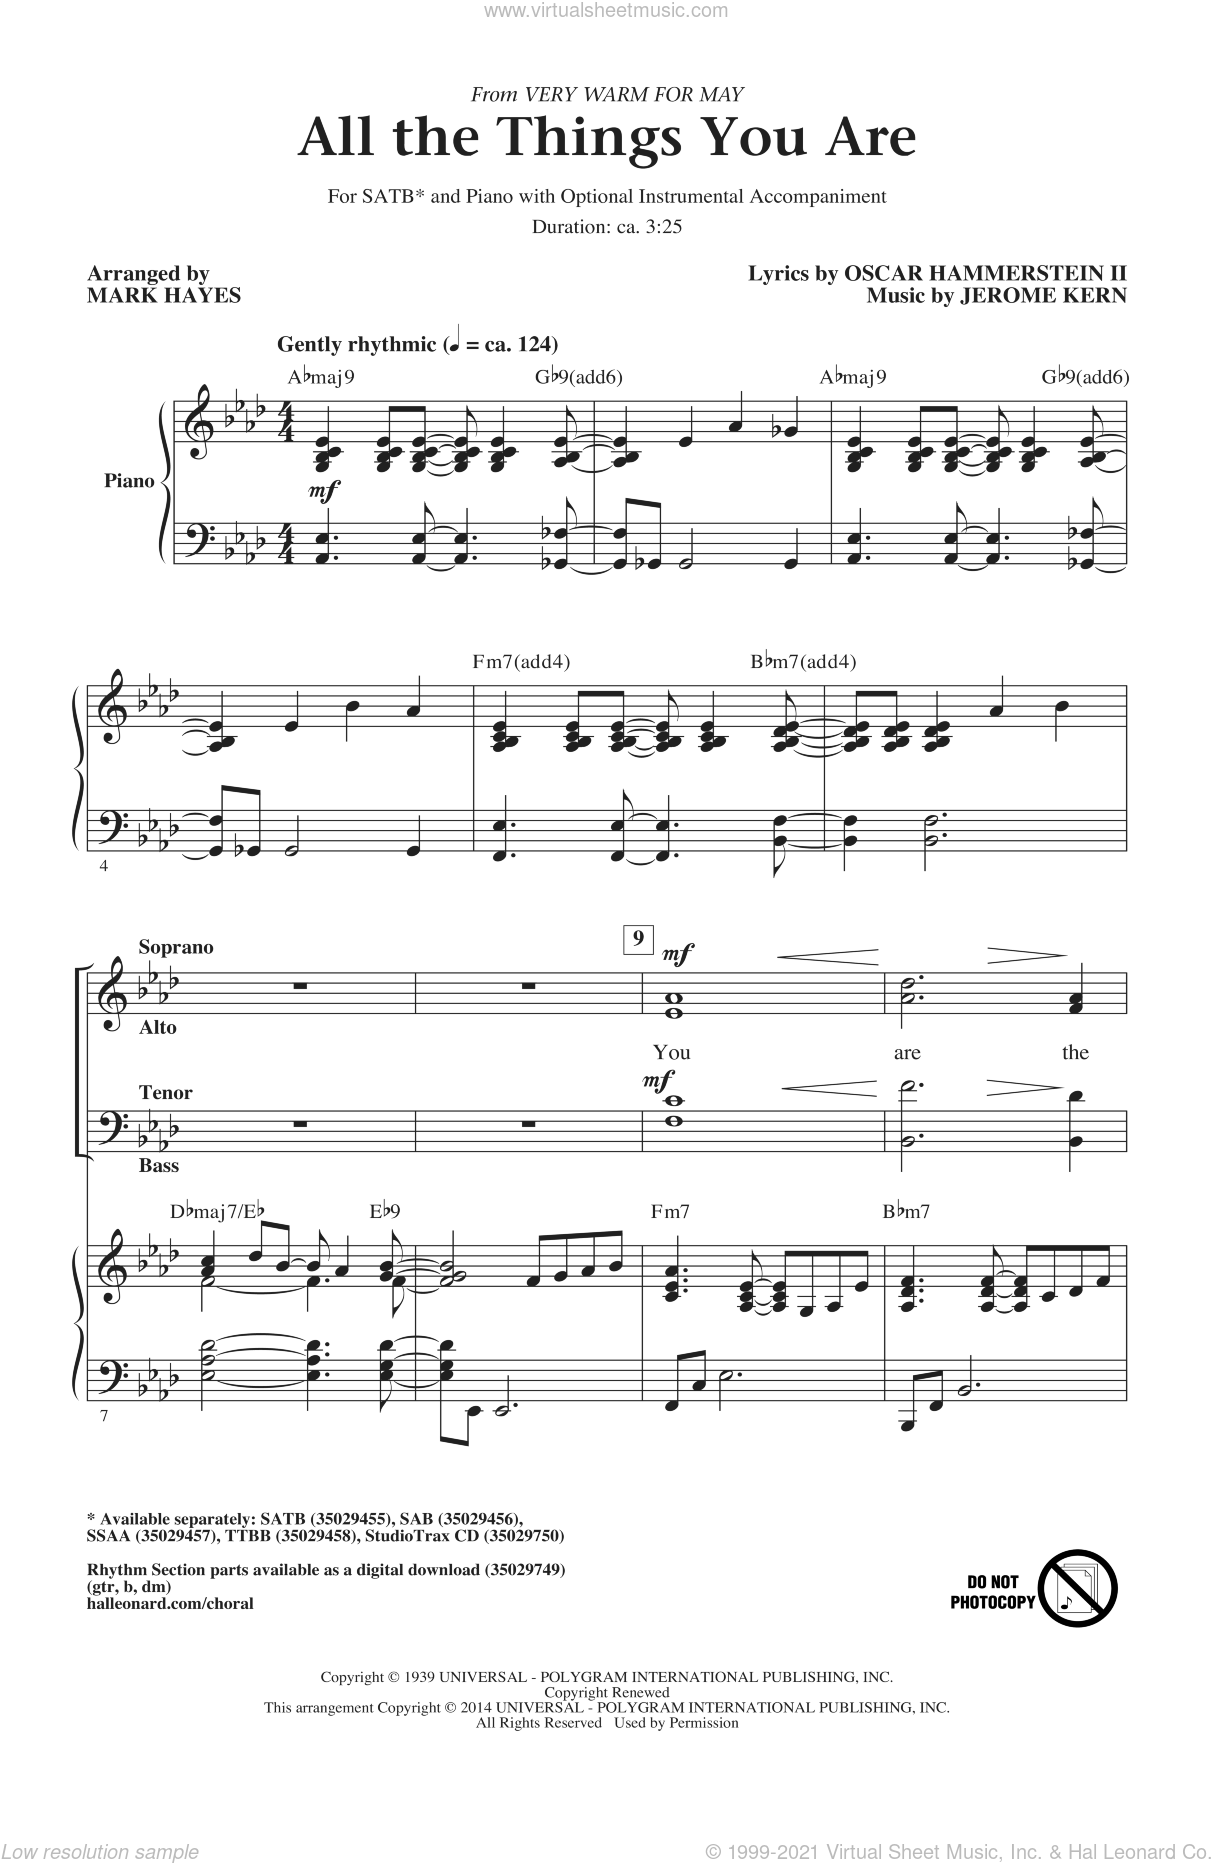 All The Things You Are sheet music for choir and piano (SATB) by Mark Hayes, Jerome Kern and Oscar II Hammerstein. Score Image Preview.